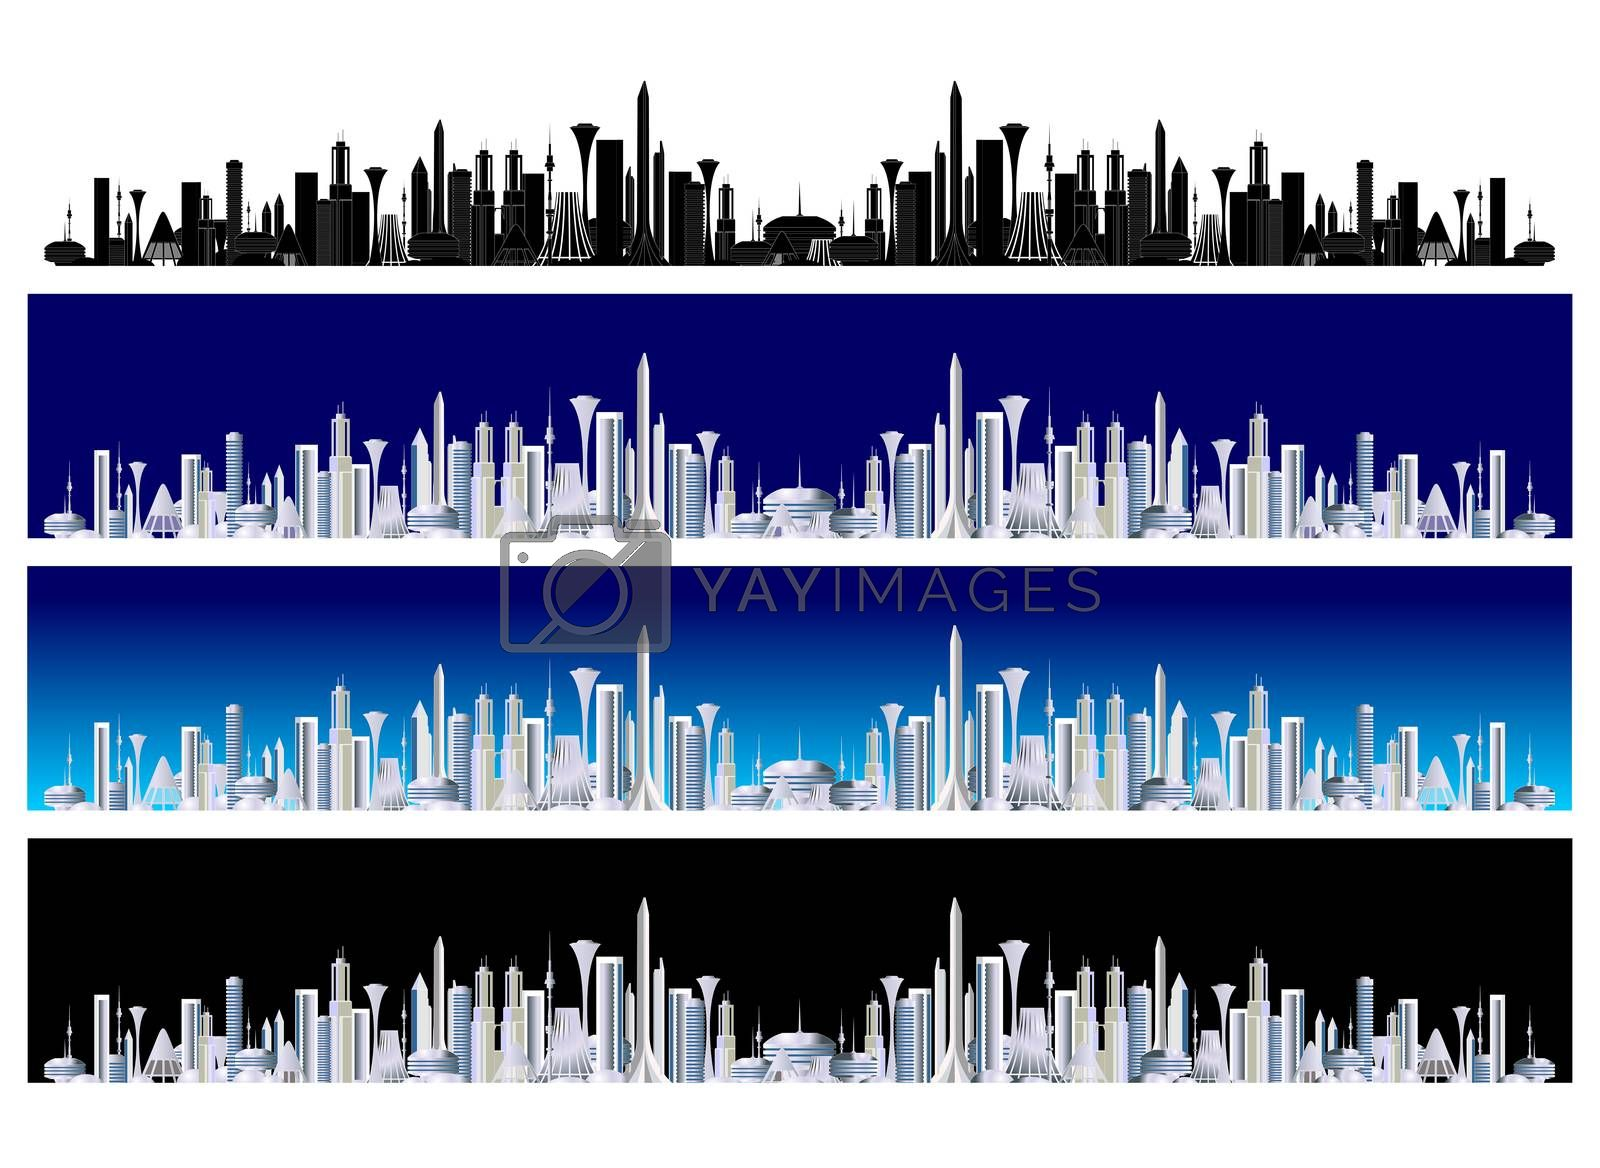 Iillustration of abstract future cityscape panorama in various colors.